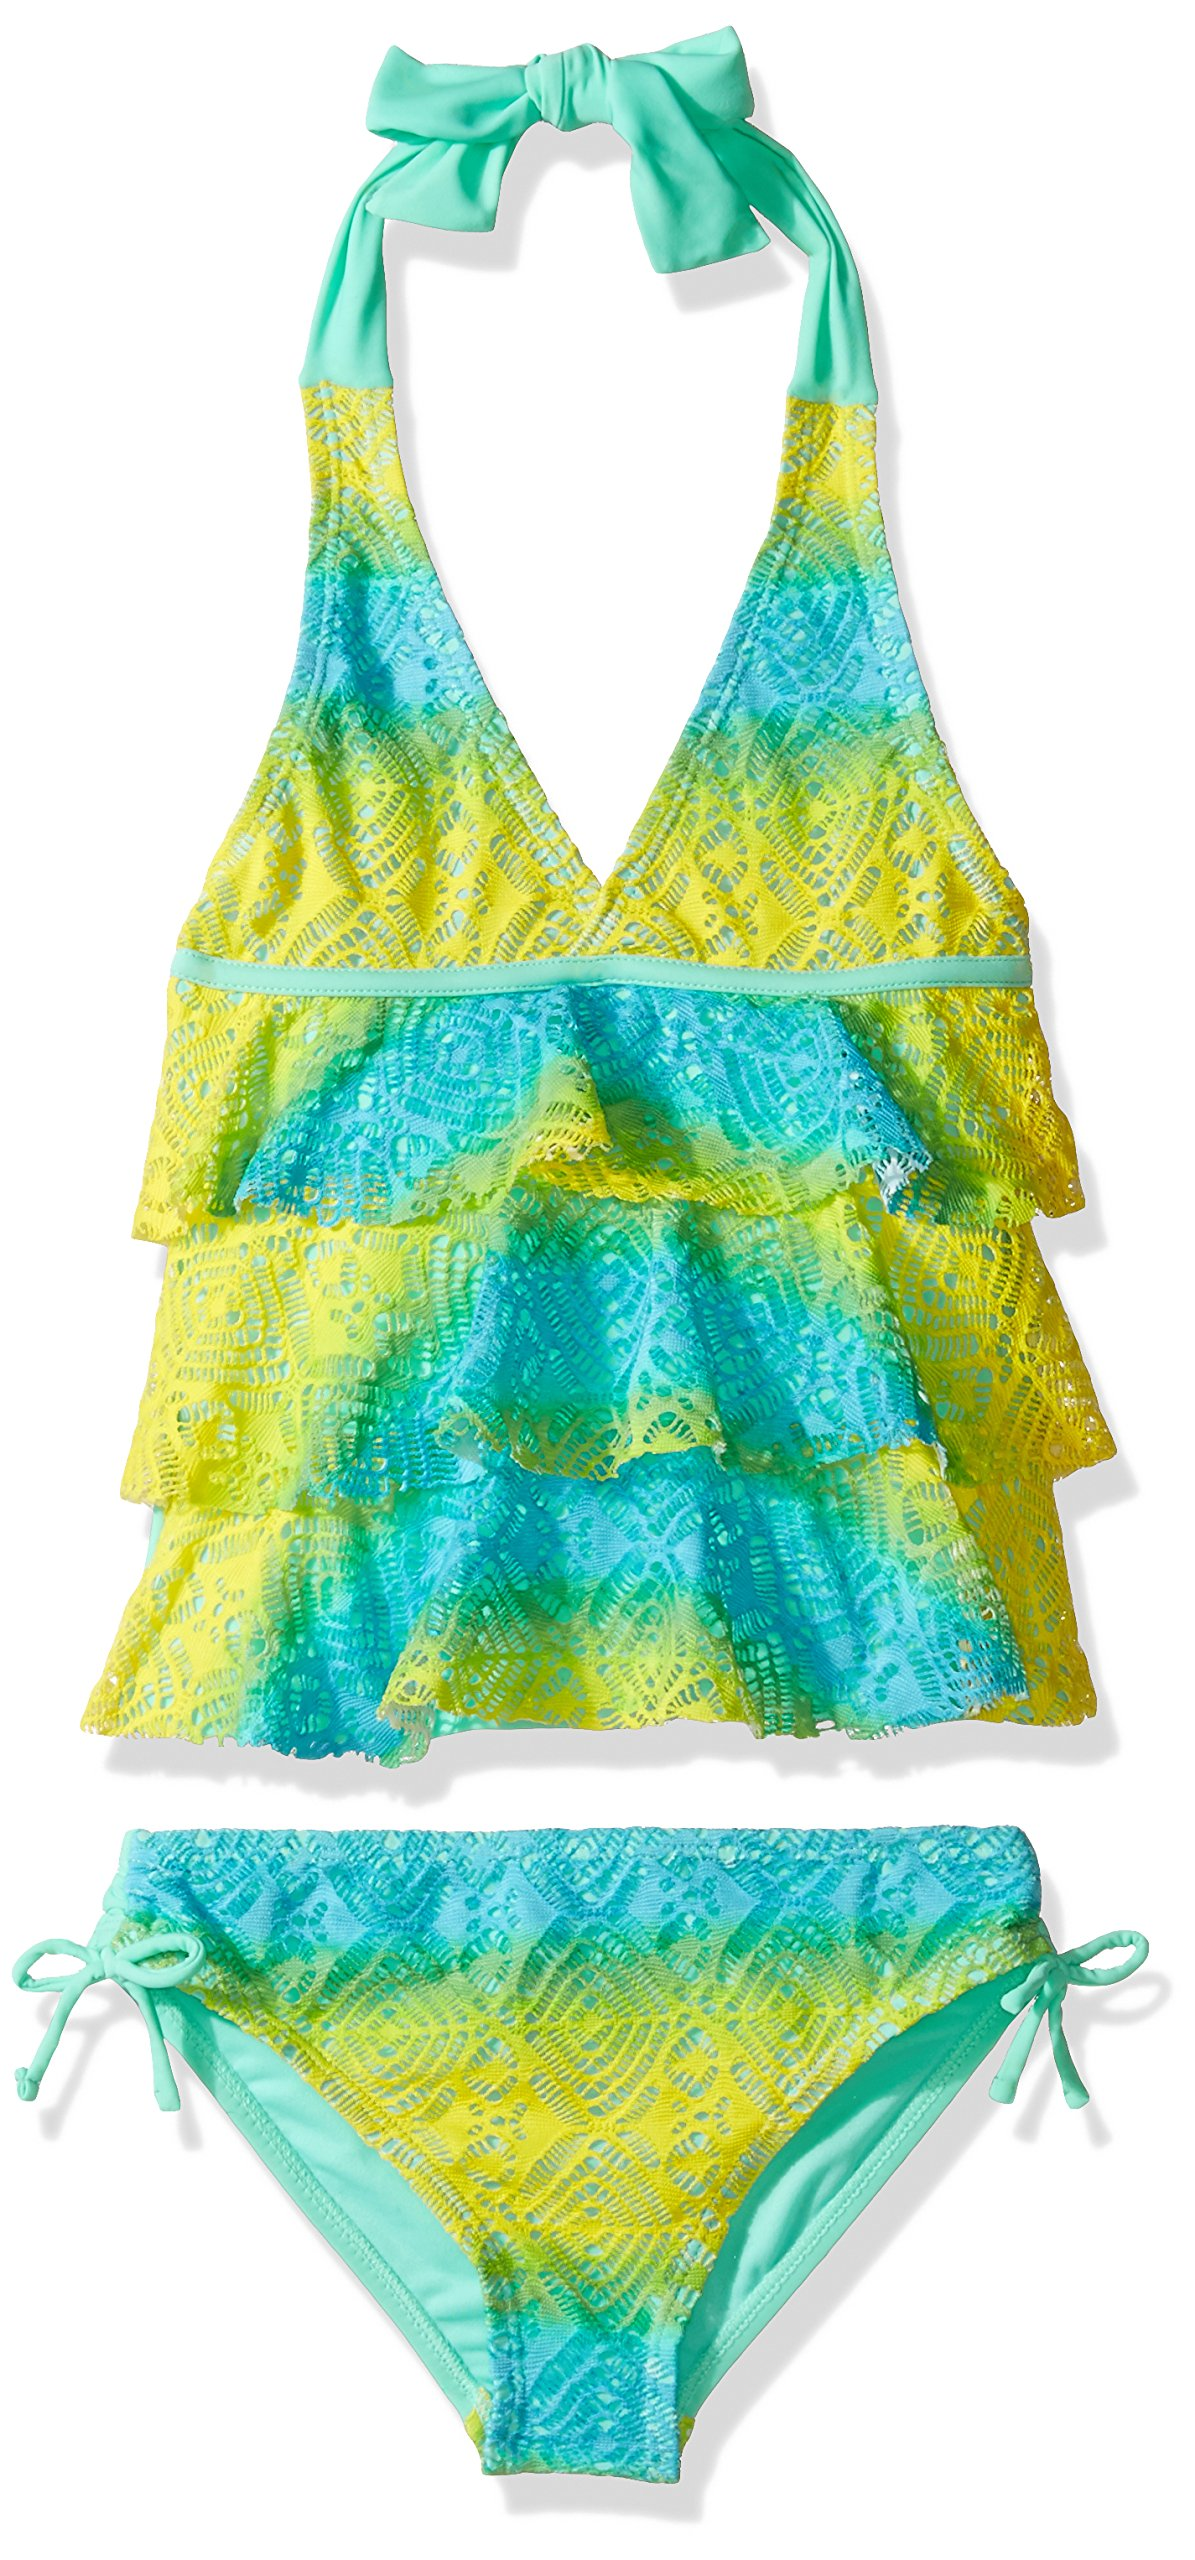 VIGOSS Big Girls' Love is in The Air Two Piece Ombre Tiered Tankini Swimsuit, Mint Sorbet, 7/8